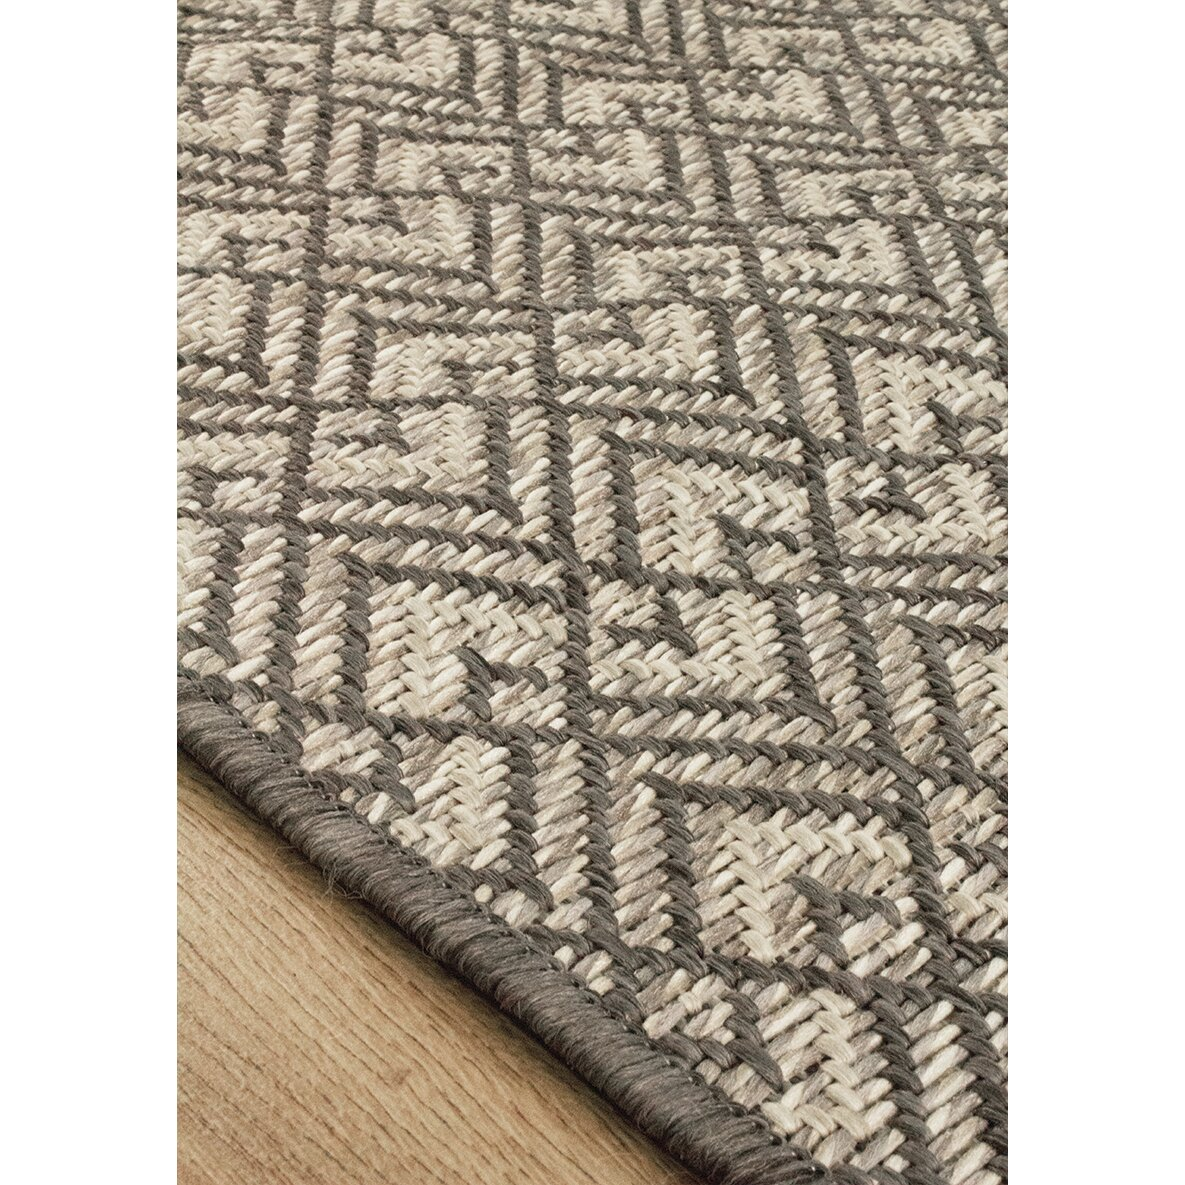 Kalora coast gray tan area rug wayfair for Grey and tan rug